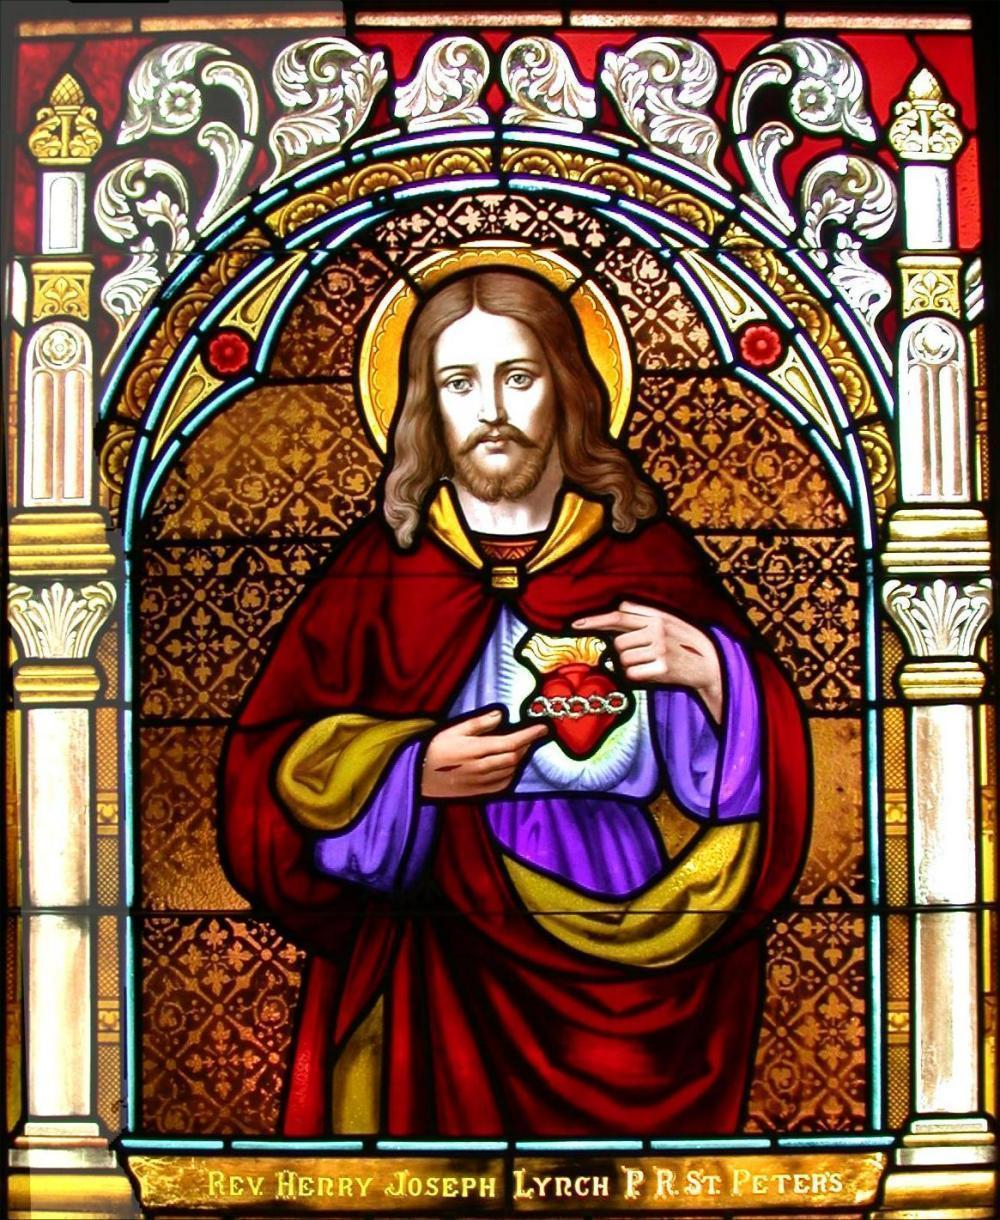 SACRED HEART OF JESUS PICTURES, SACRED HEART JESUS DEVOTION, JESUS ...